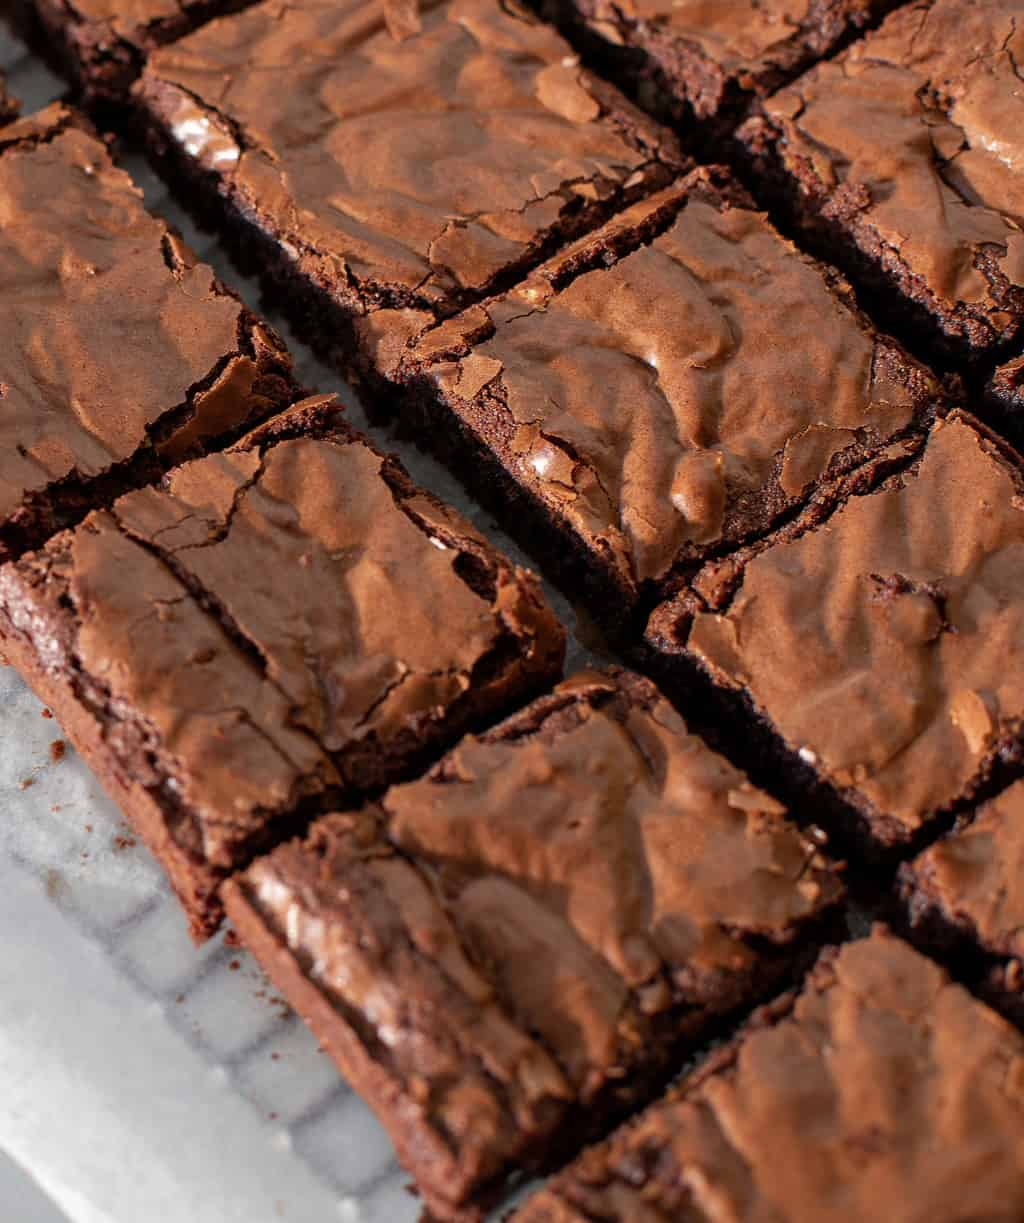 Coconut flour keto brownies on a parchment lined baking rack